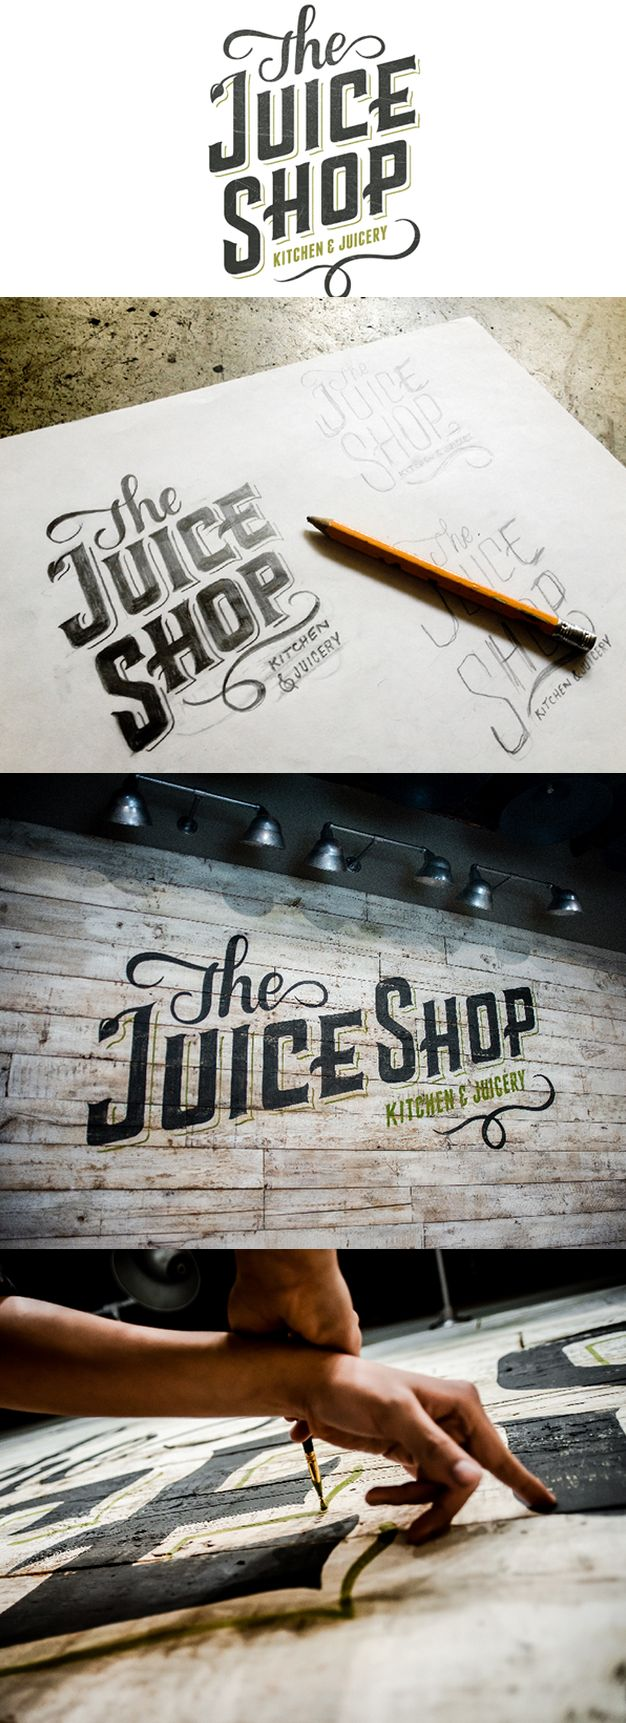 The Juice Shop by No Entry Design via betype